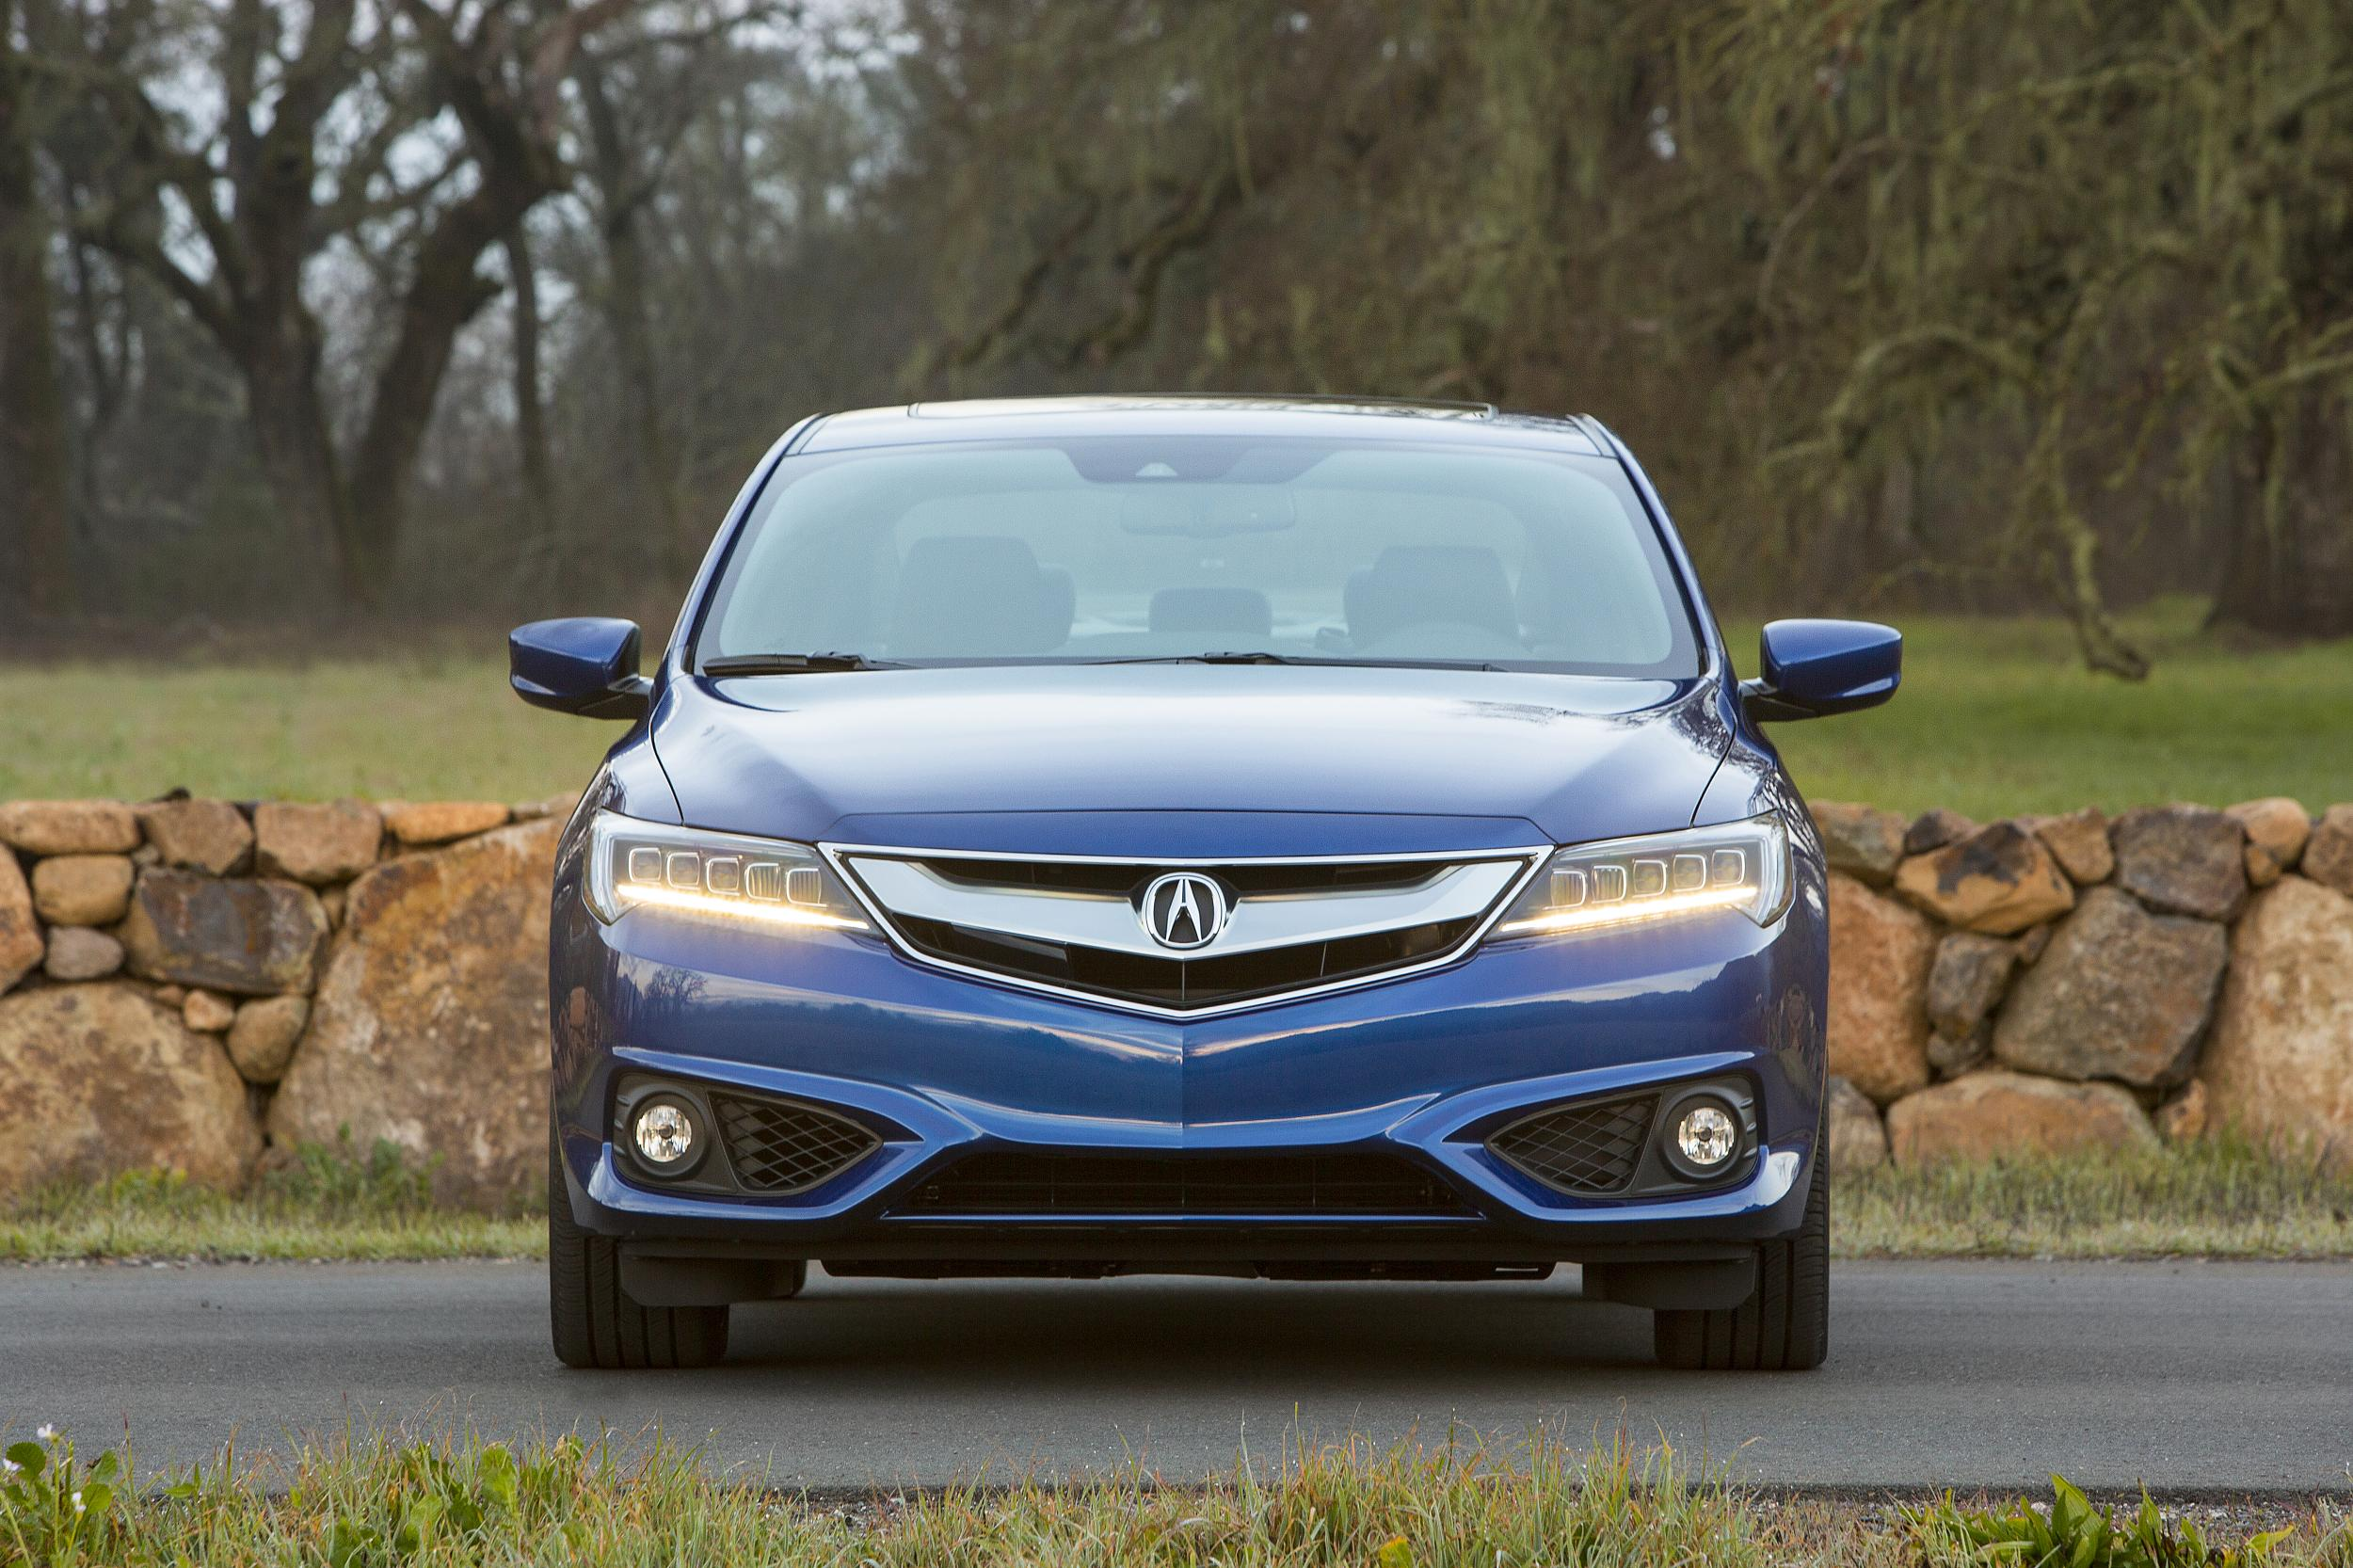 cnynewcars price sedans com features ilx review specs acura